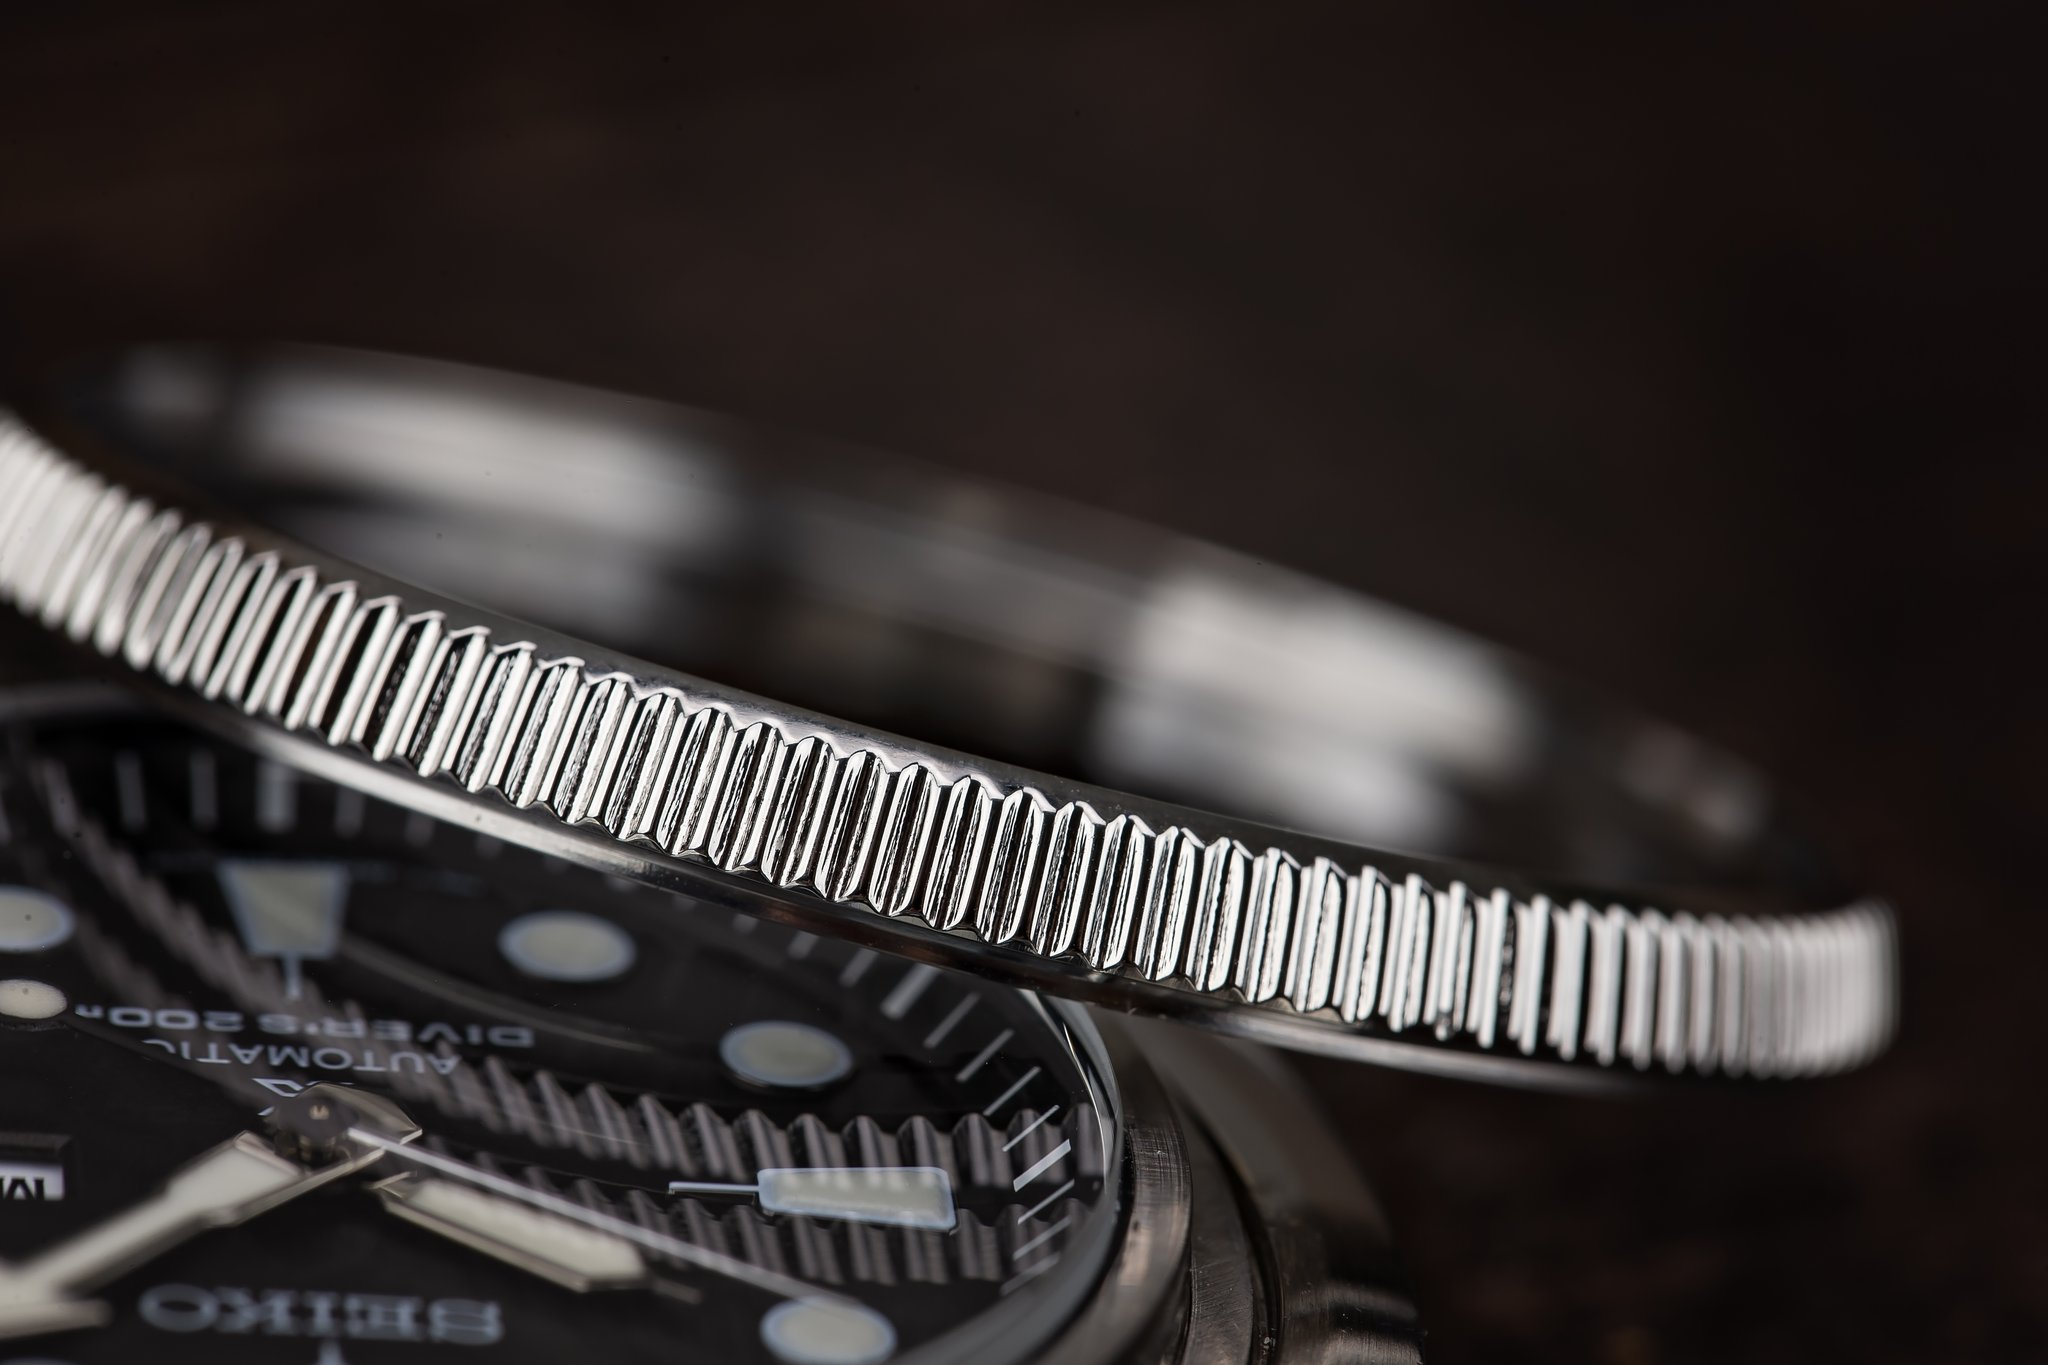 SOLD - Seiko Turtle SRP77X Stainless Steel Coin Edge Bezel from